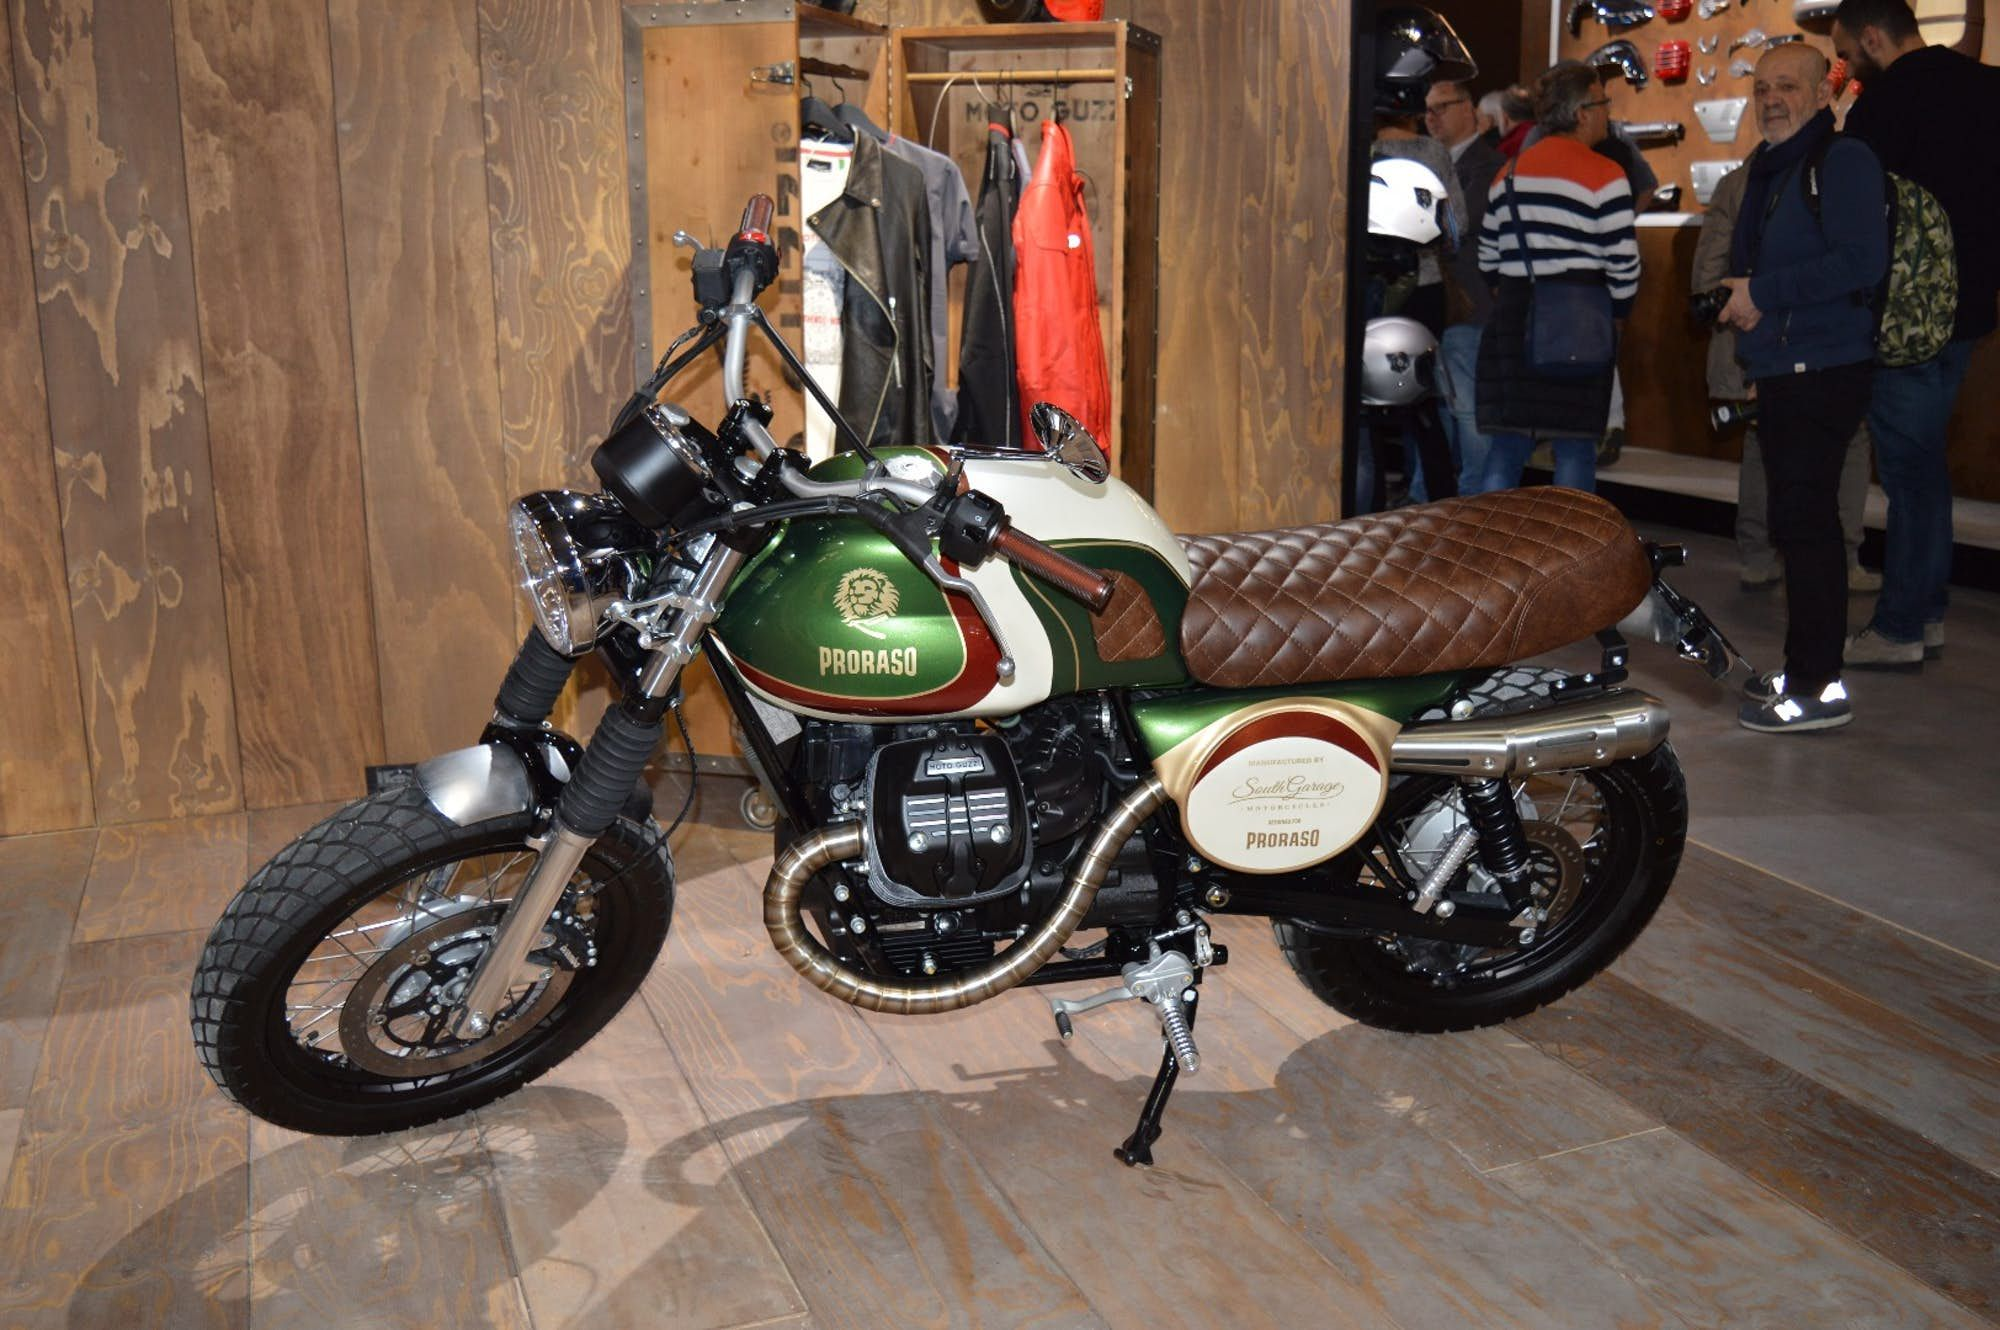 A Moto Guzzi V7 Customized By South Garage Motorcycles On